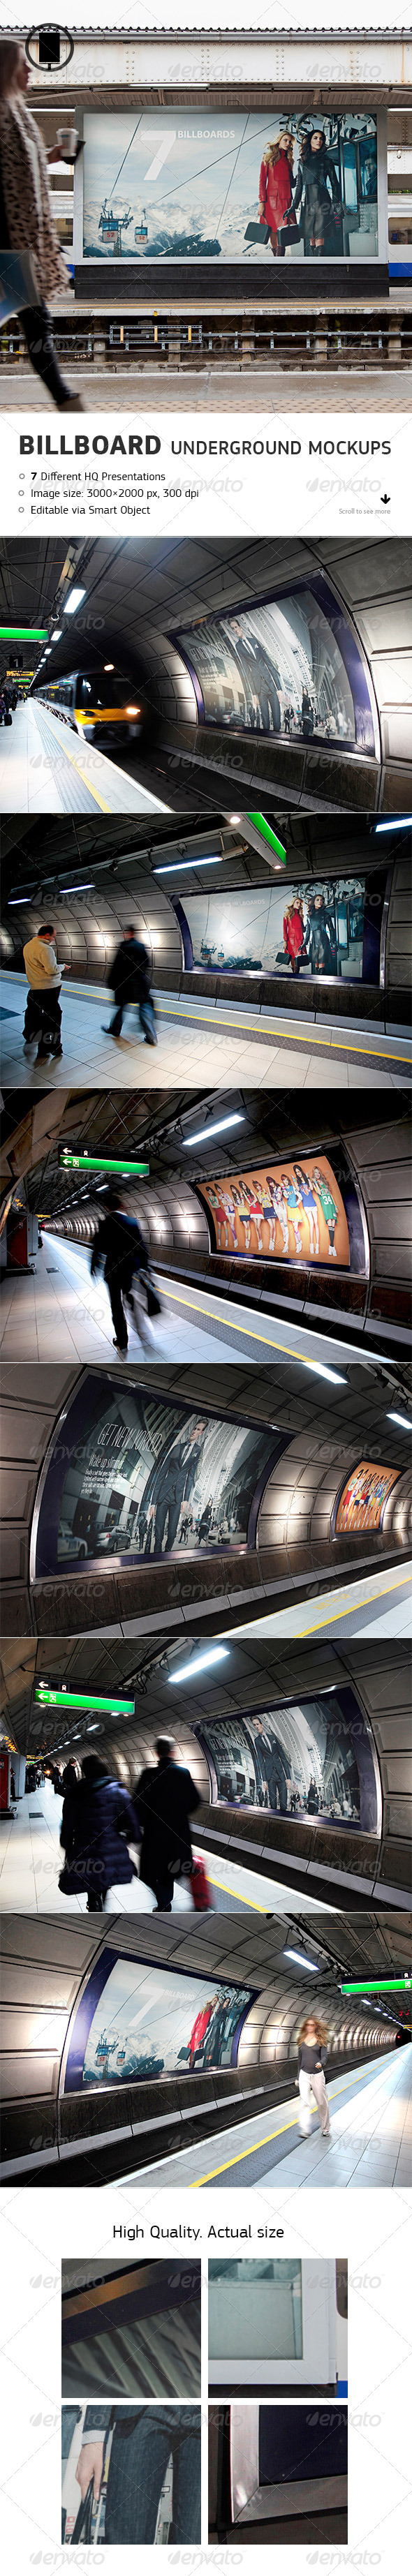 GraphicRiver Billboard Underground Metro Subway Mock-Up 8752105